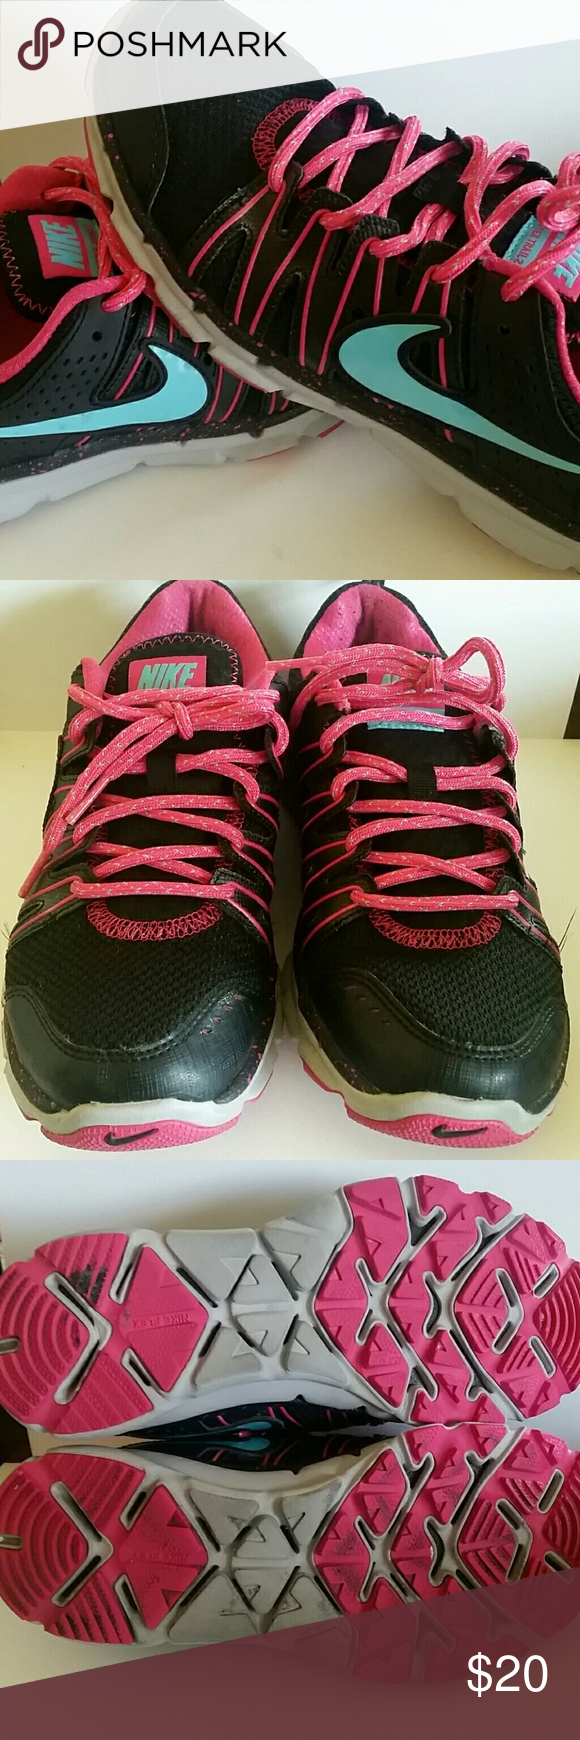 93b025036fe1d  Nike  Flex Trail 2 Fit Sole Black Pink Turquoise Gray tennis shoes. Pink  shoe strings w  turquoise stitching. Sole has pink speckle. Pre-loved.